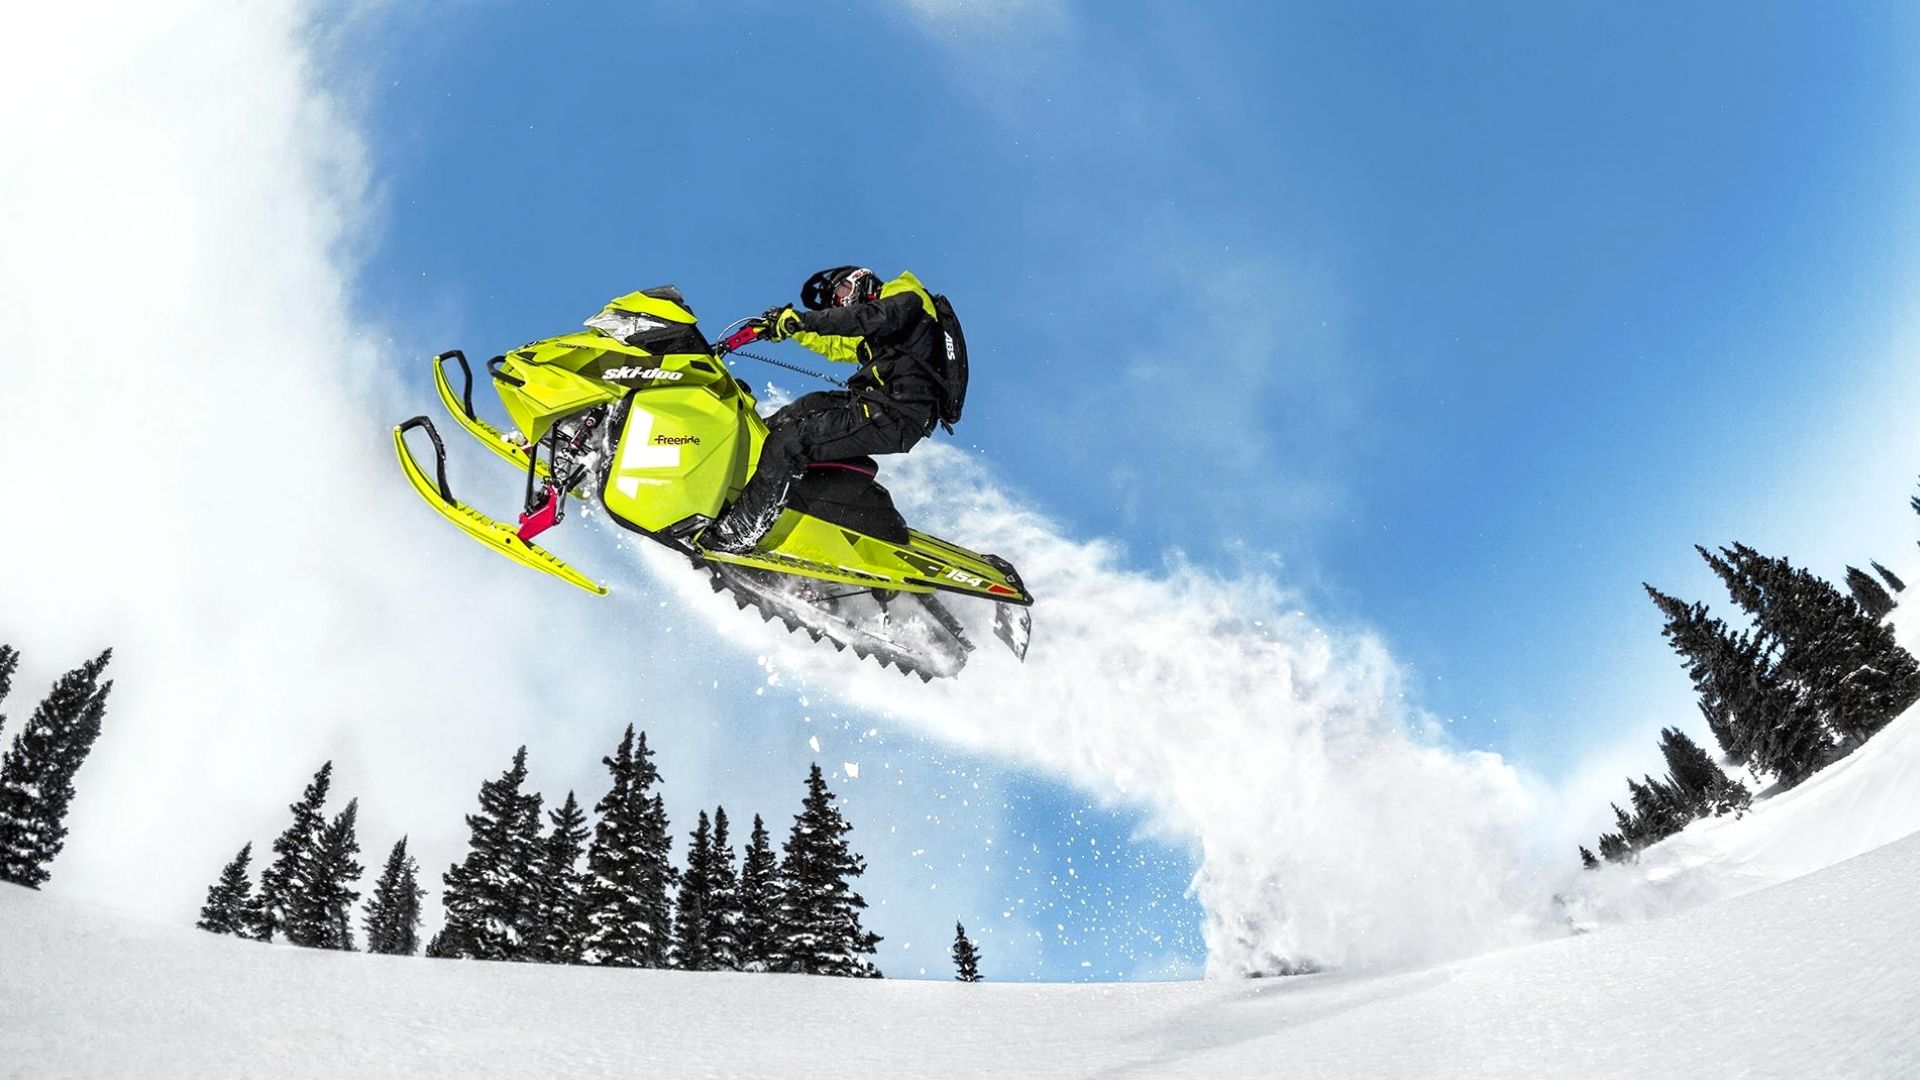 Pictures of snowmobiles